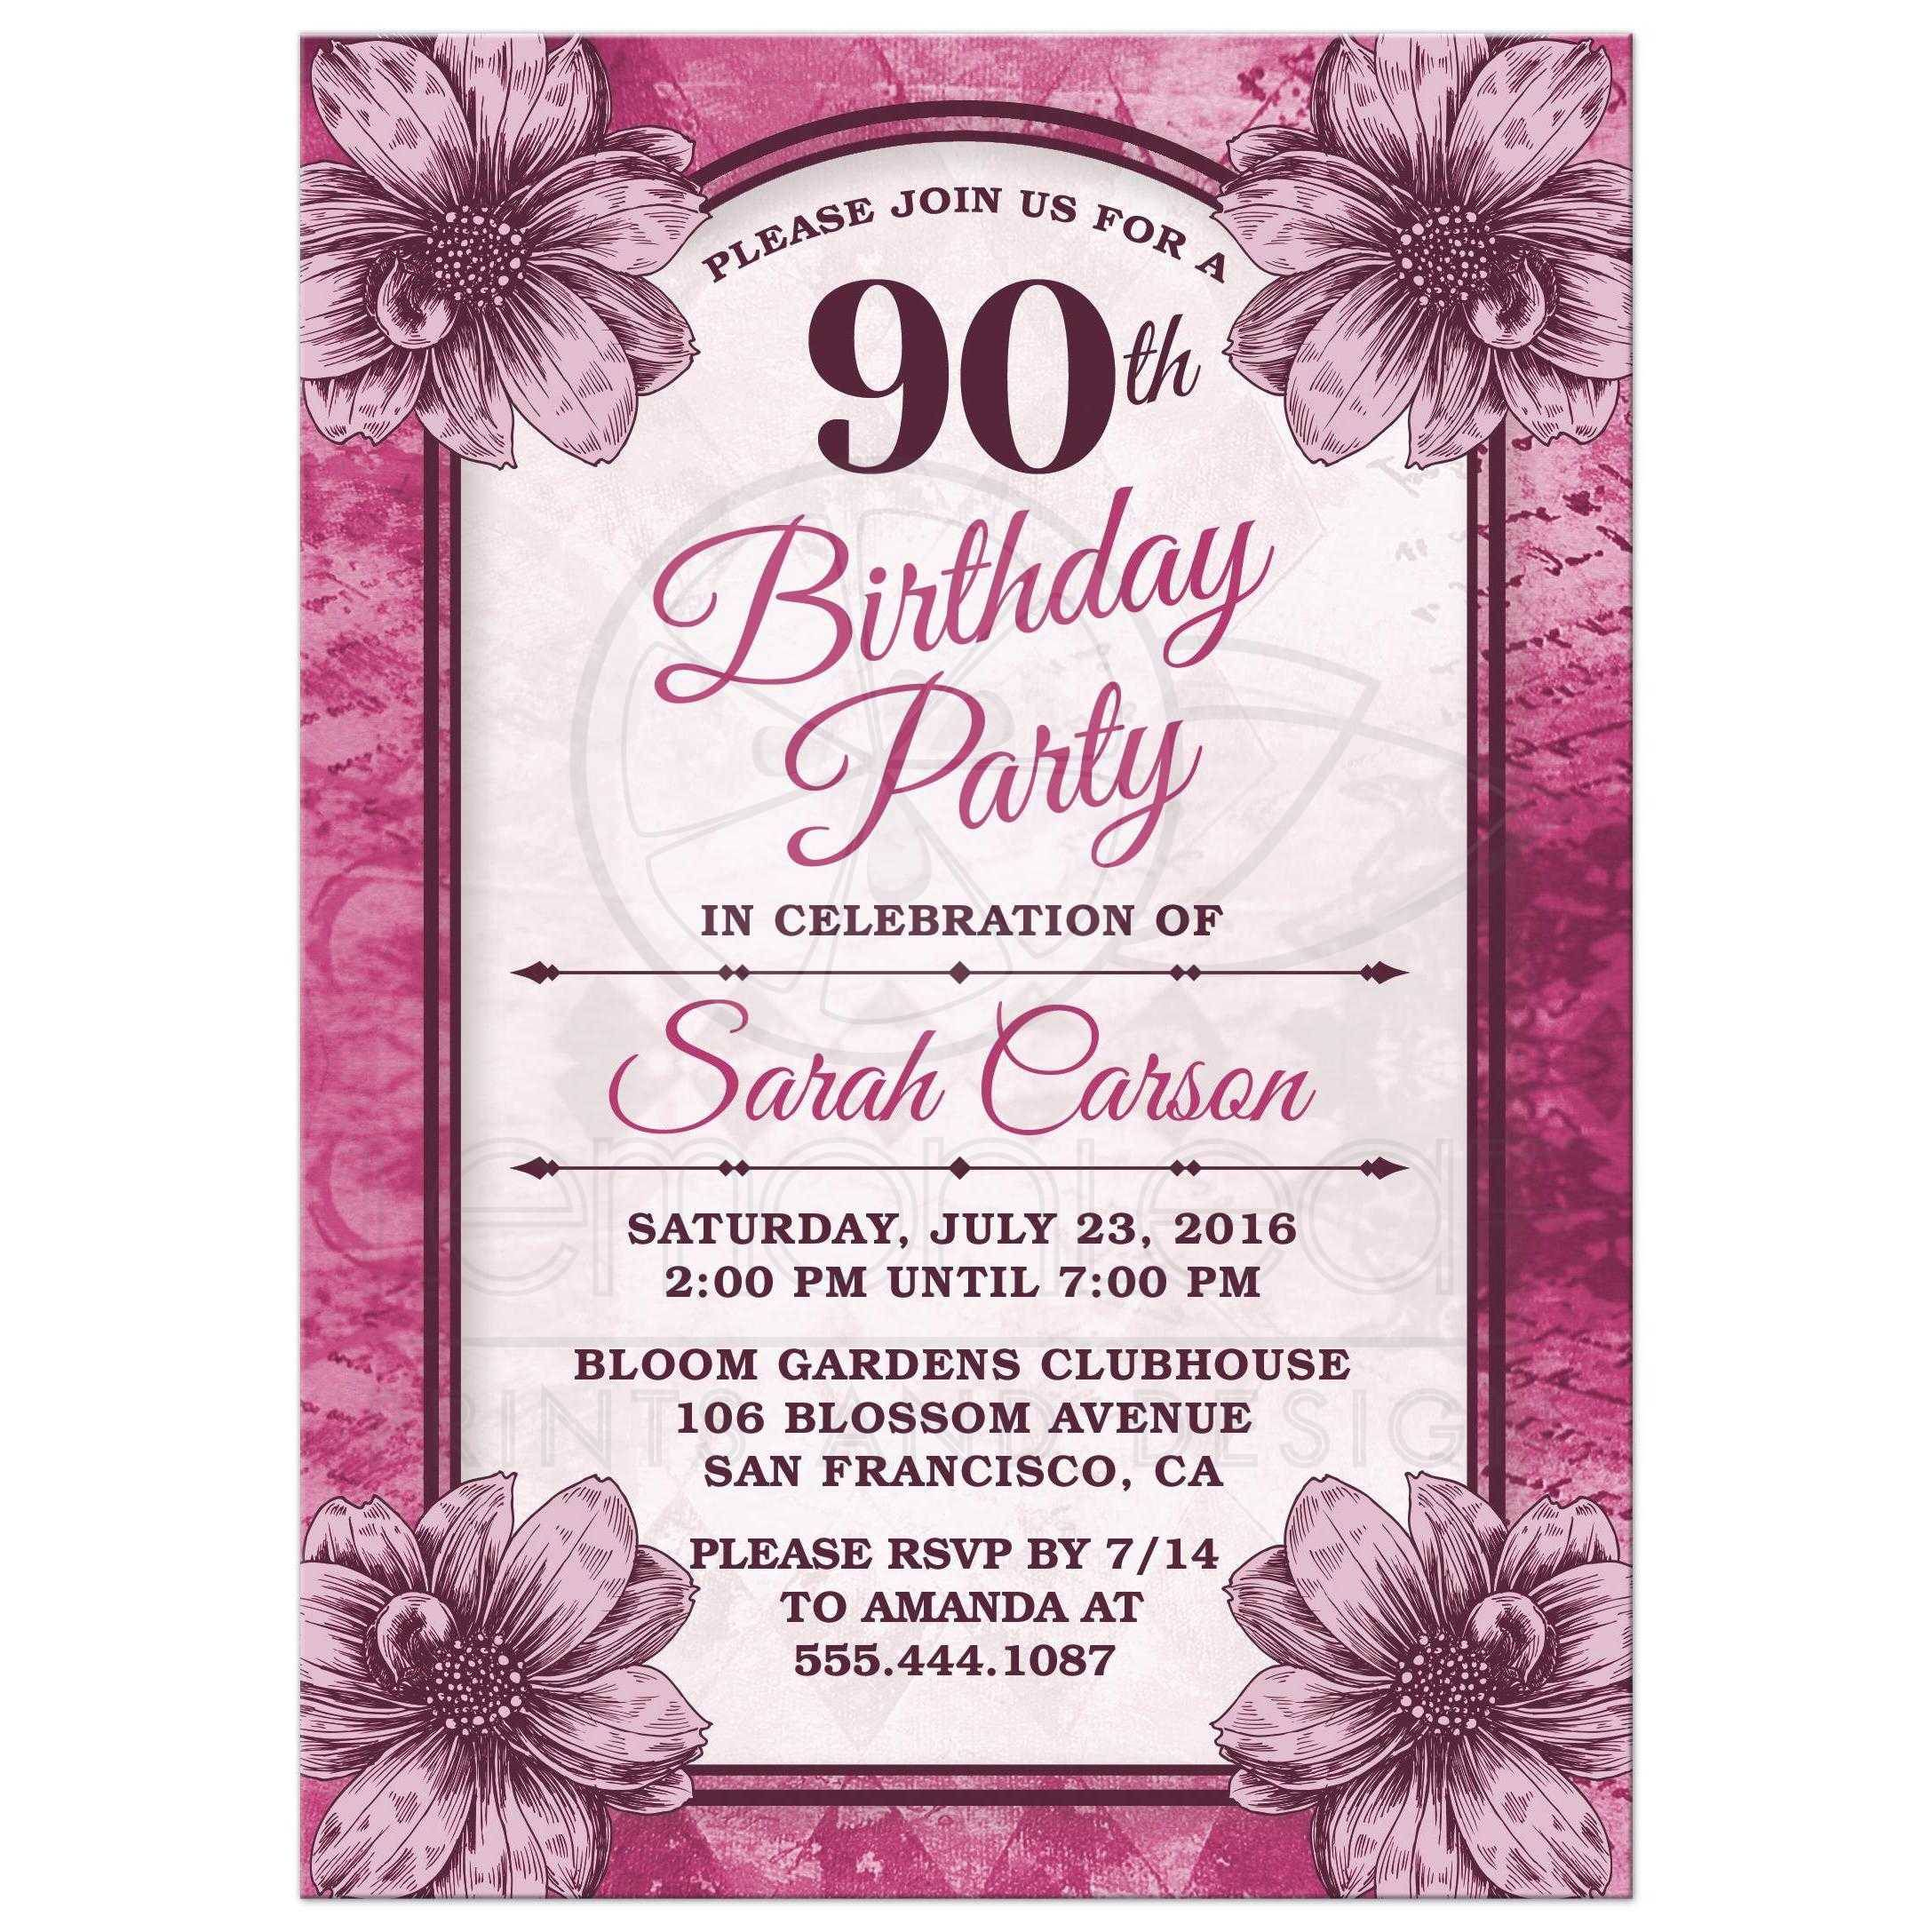 90th Birthday Party Invitations Templates Free Party Ideas